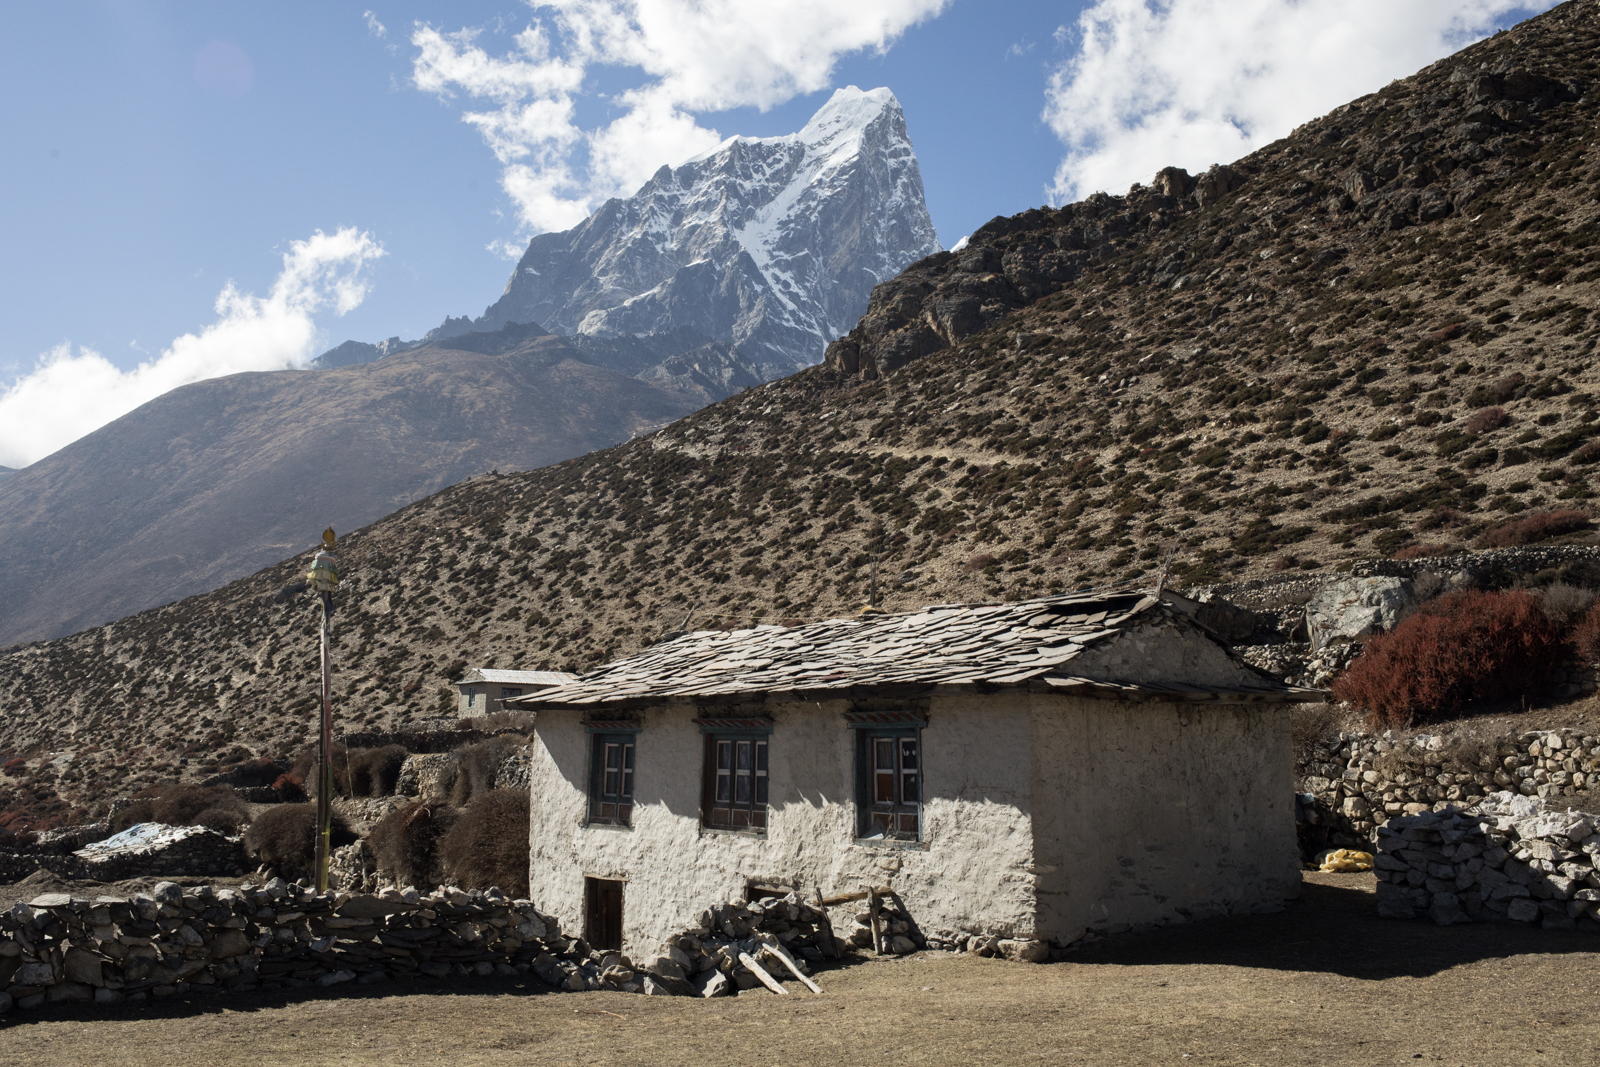 Taboche 6,495 m / 21,309 ft.  The village of Dingboche which sits at an elevation of 14,410 ft. We took a rest day to acclimatize to the elevation gain and the altitude. I was beginning to feel some effects of altitude, a slight headache, and a little nausea.  I made sure to rest a lot during our stay at Dingboche. Rest, hydration, repeat.